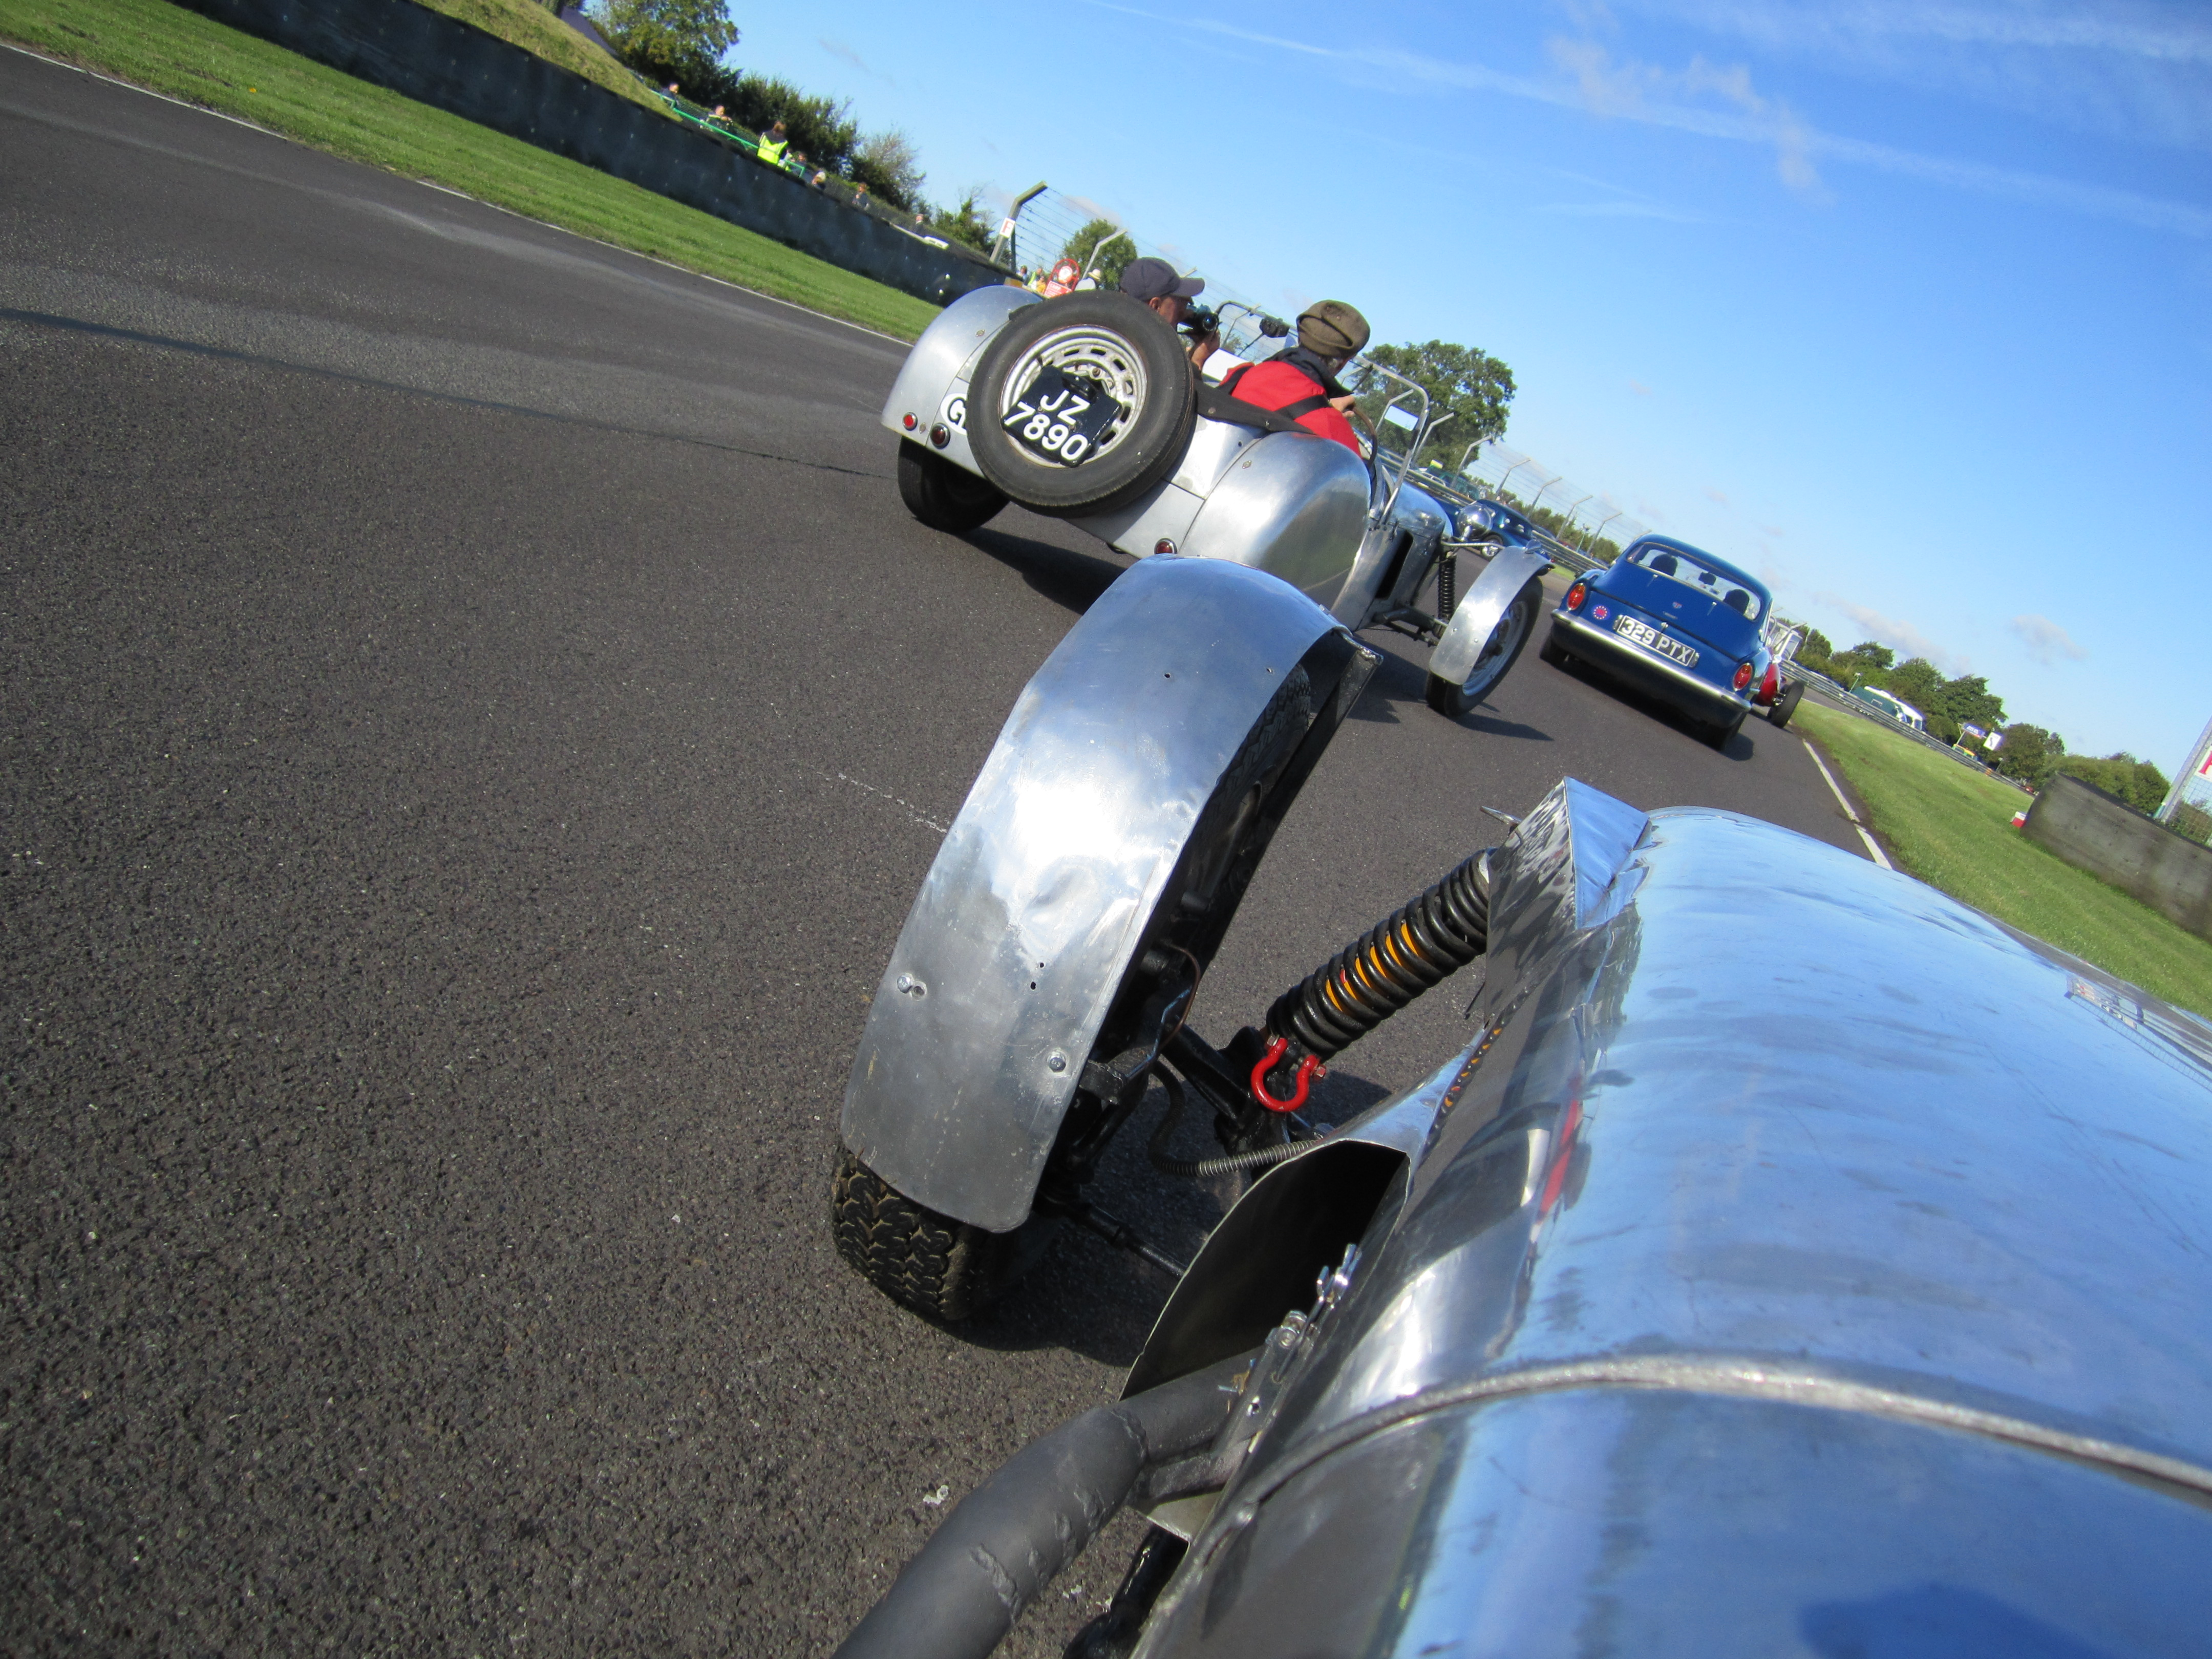 On-track in the Lotus MK6